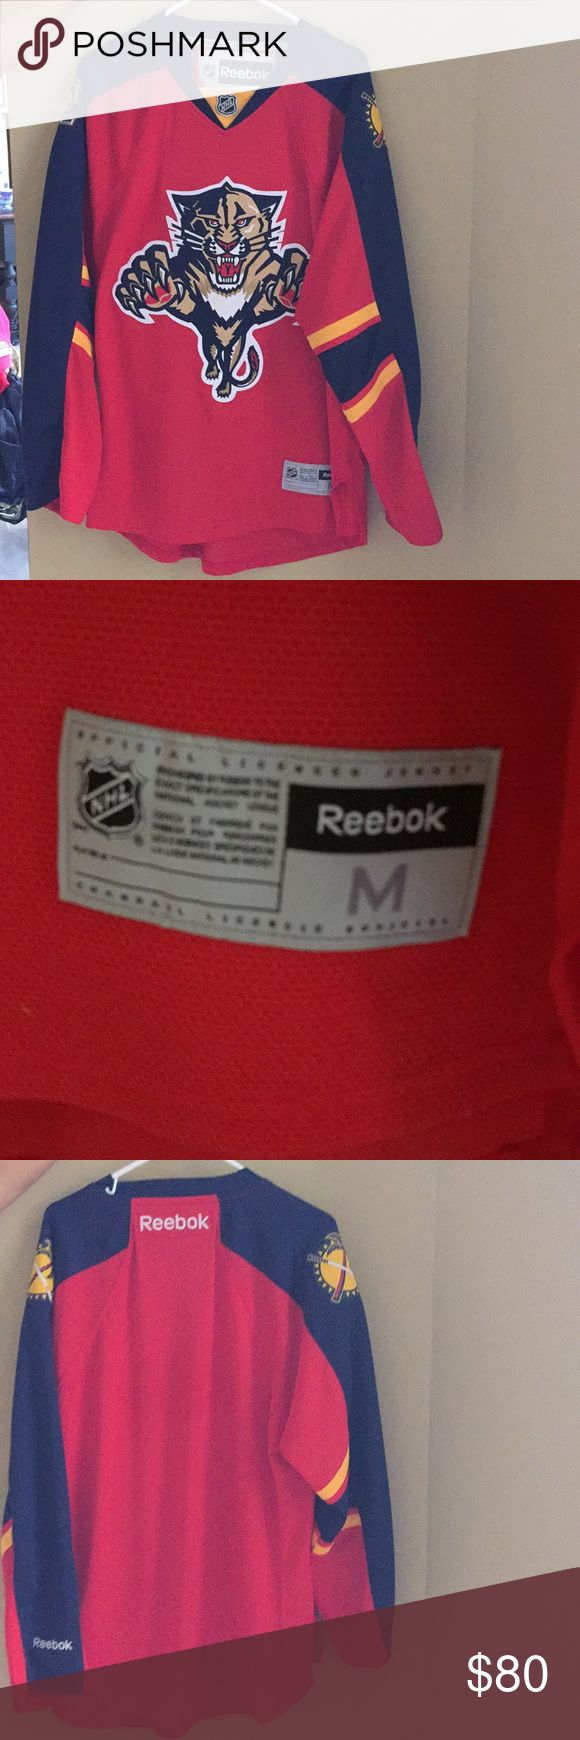 Florida Panthers Reebok Jersey Excellent condition Reebok Shirts